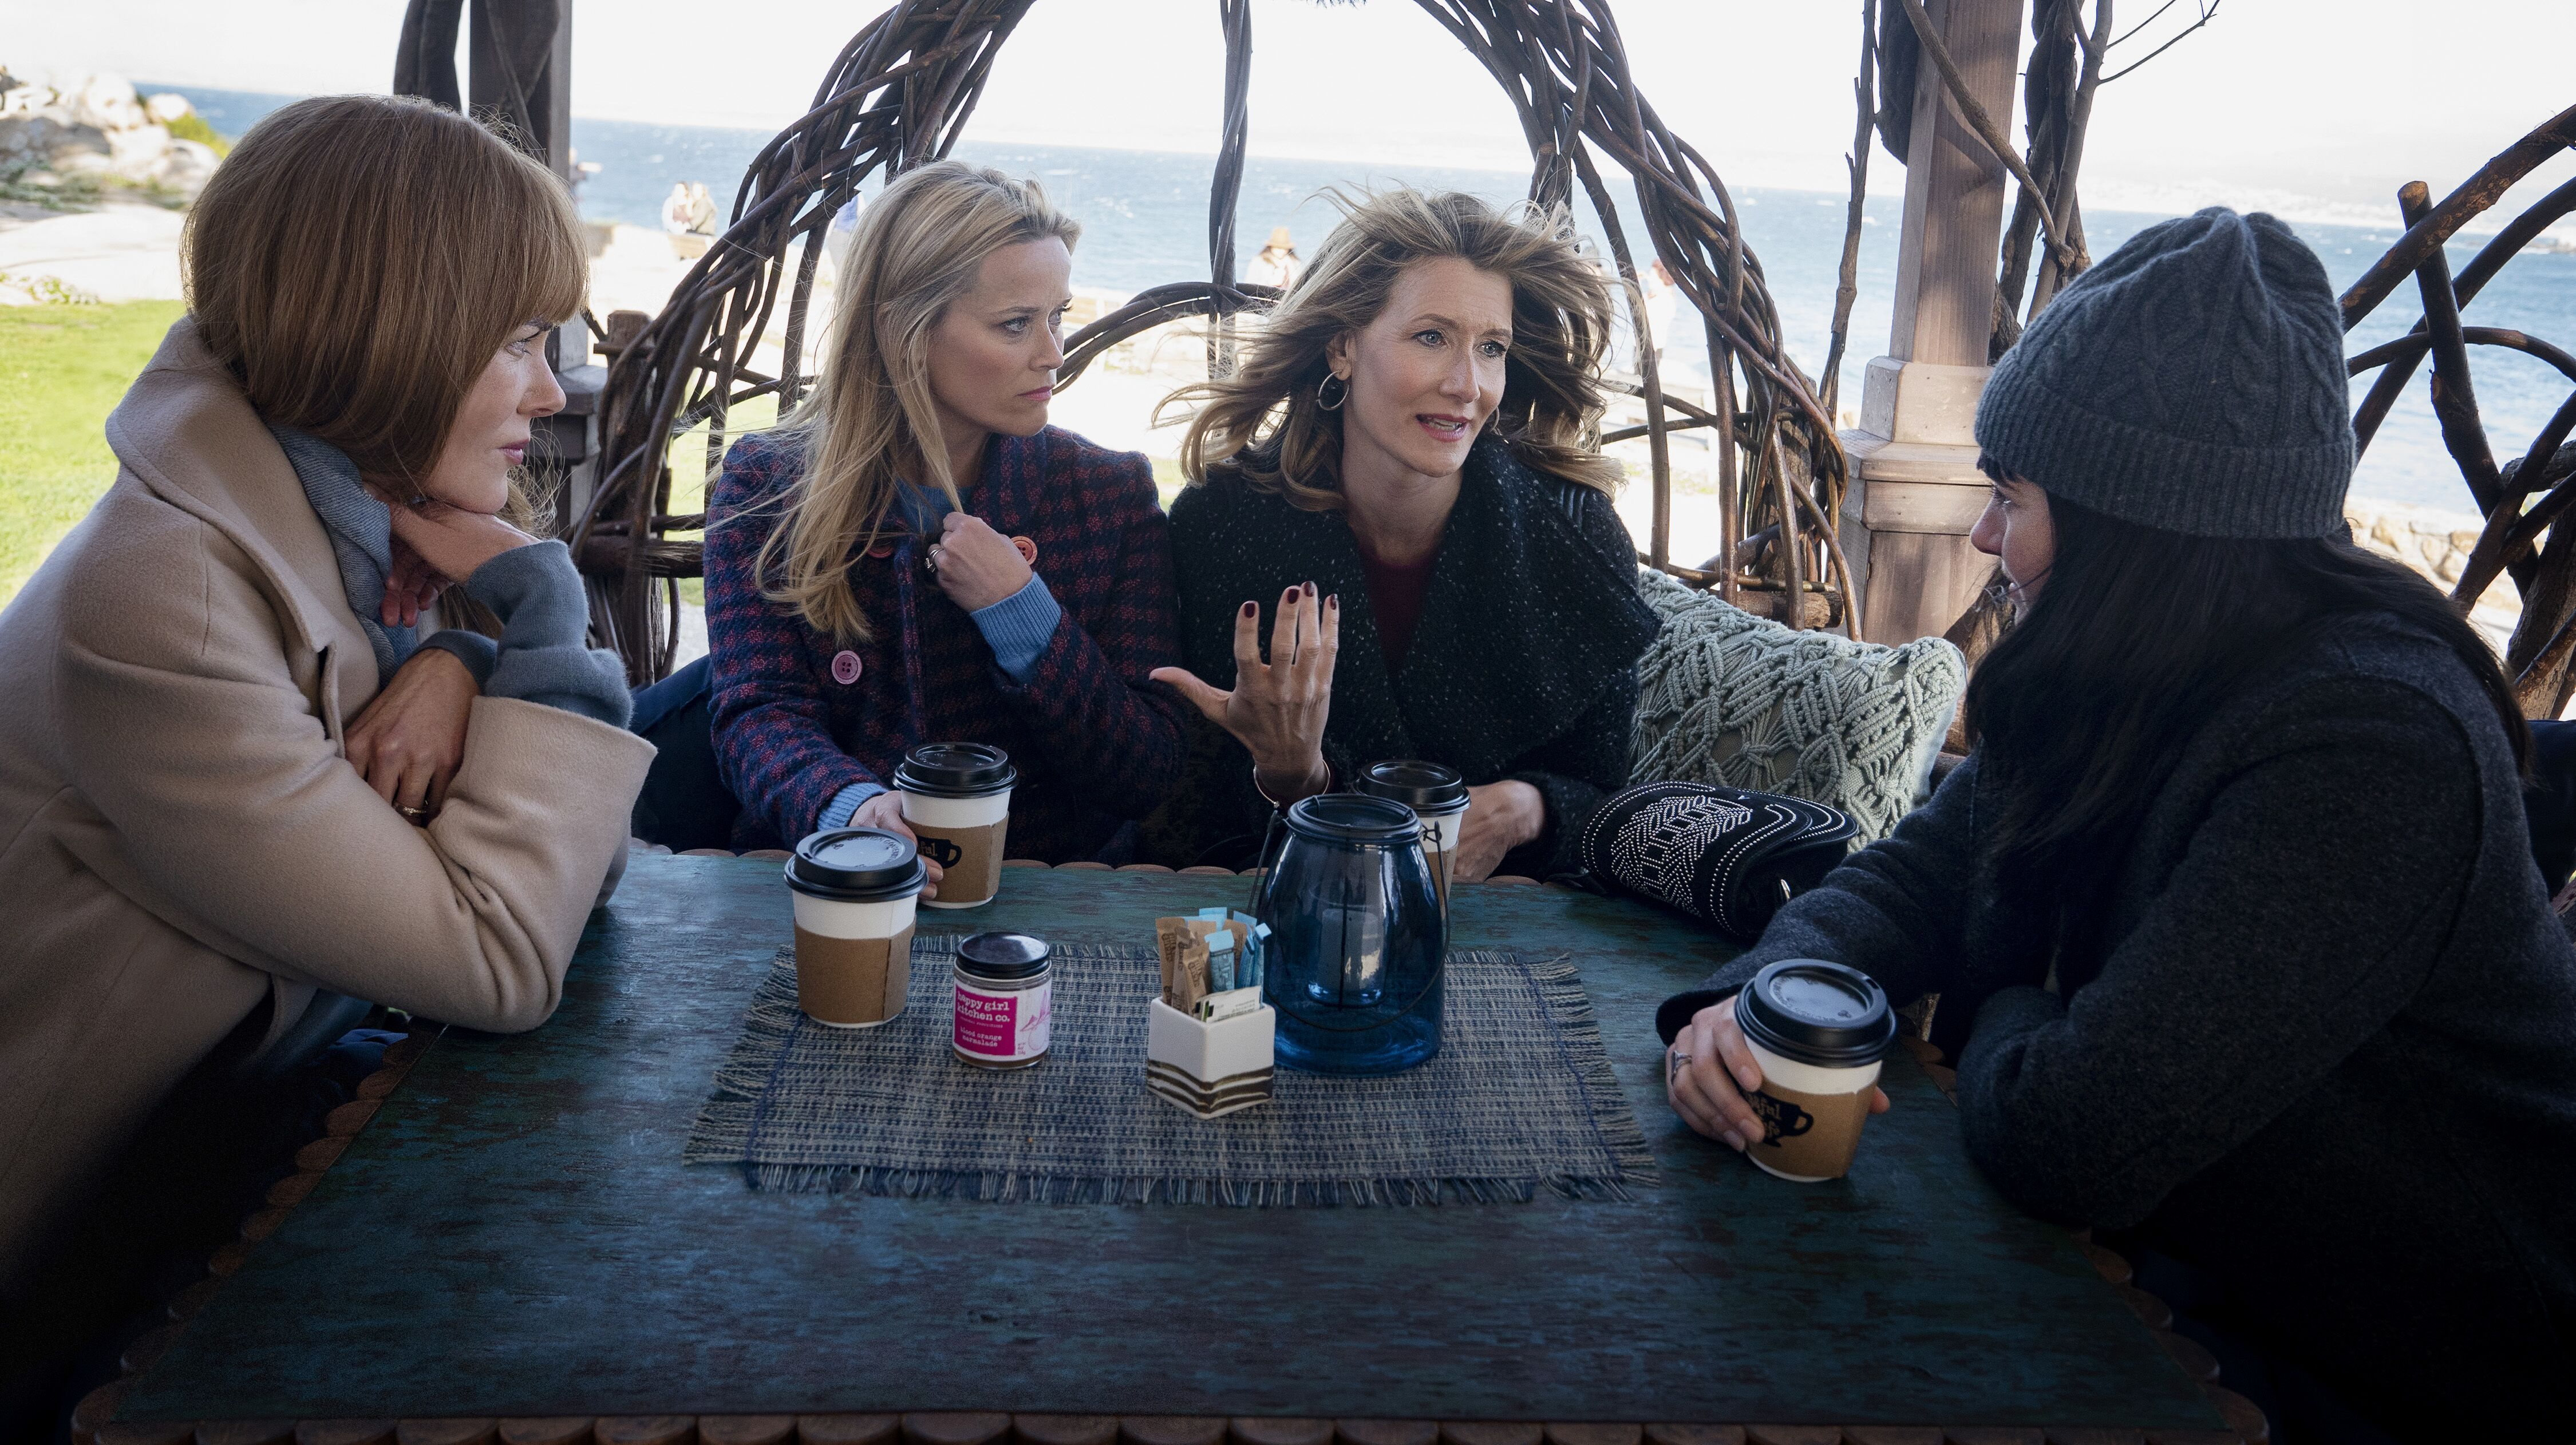 Big Little Lies: 2.5 million people watched the premiere